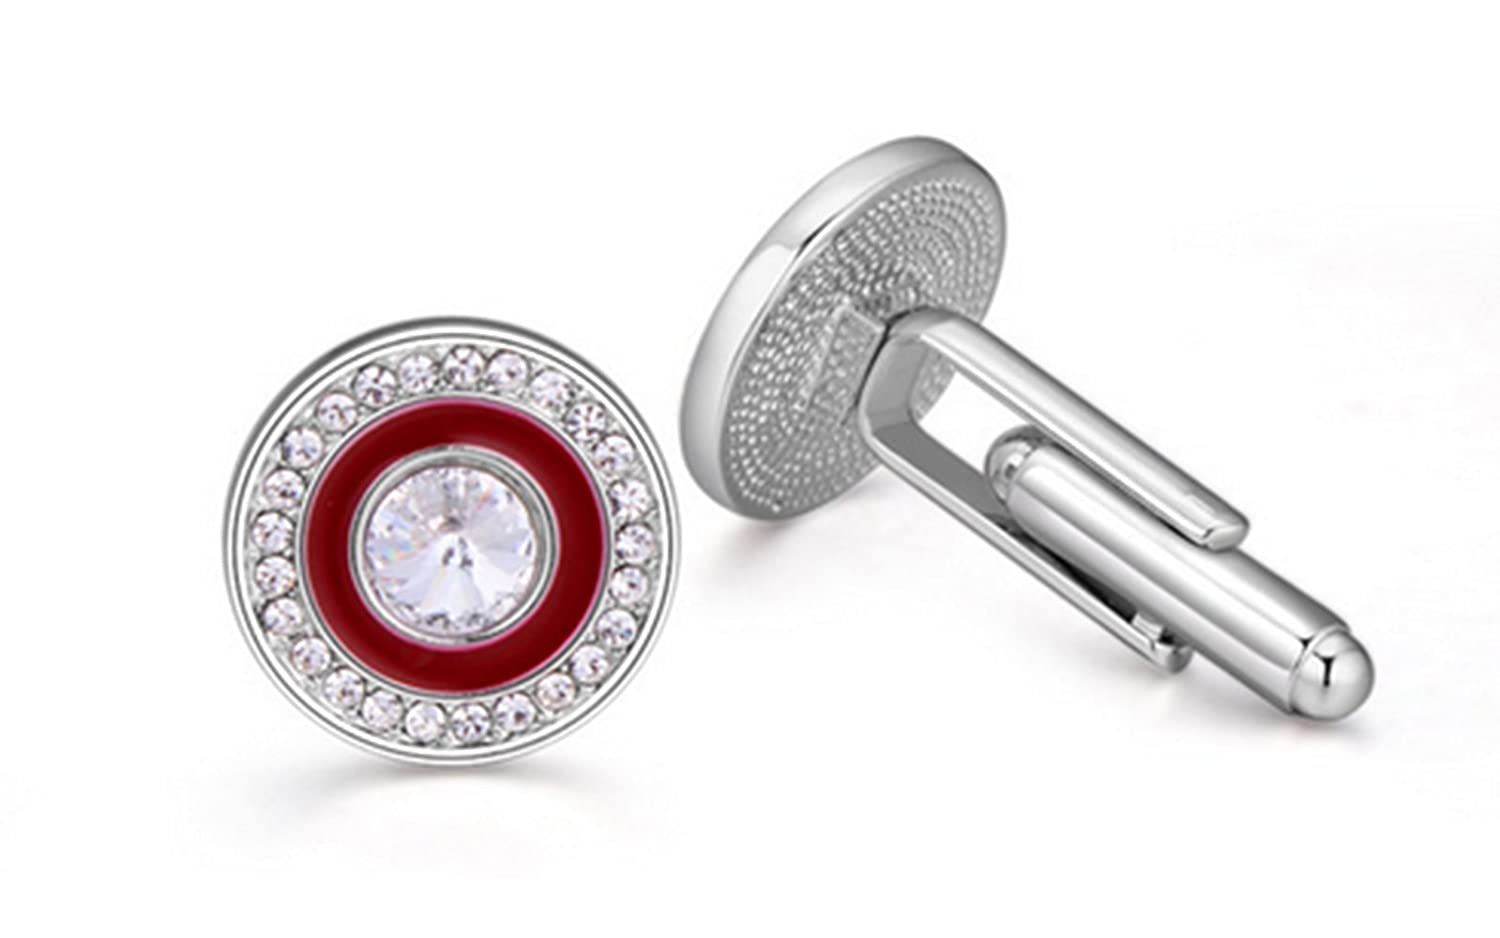 Gudeke Austrian Crystal Shirt Rhinestone Gem Cufflinks for Men and Women - the Vast Sky Cristal autrichien Chemise Gem Boutons de manchette strass pour hommes et femmes (rouge)